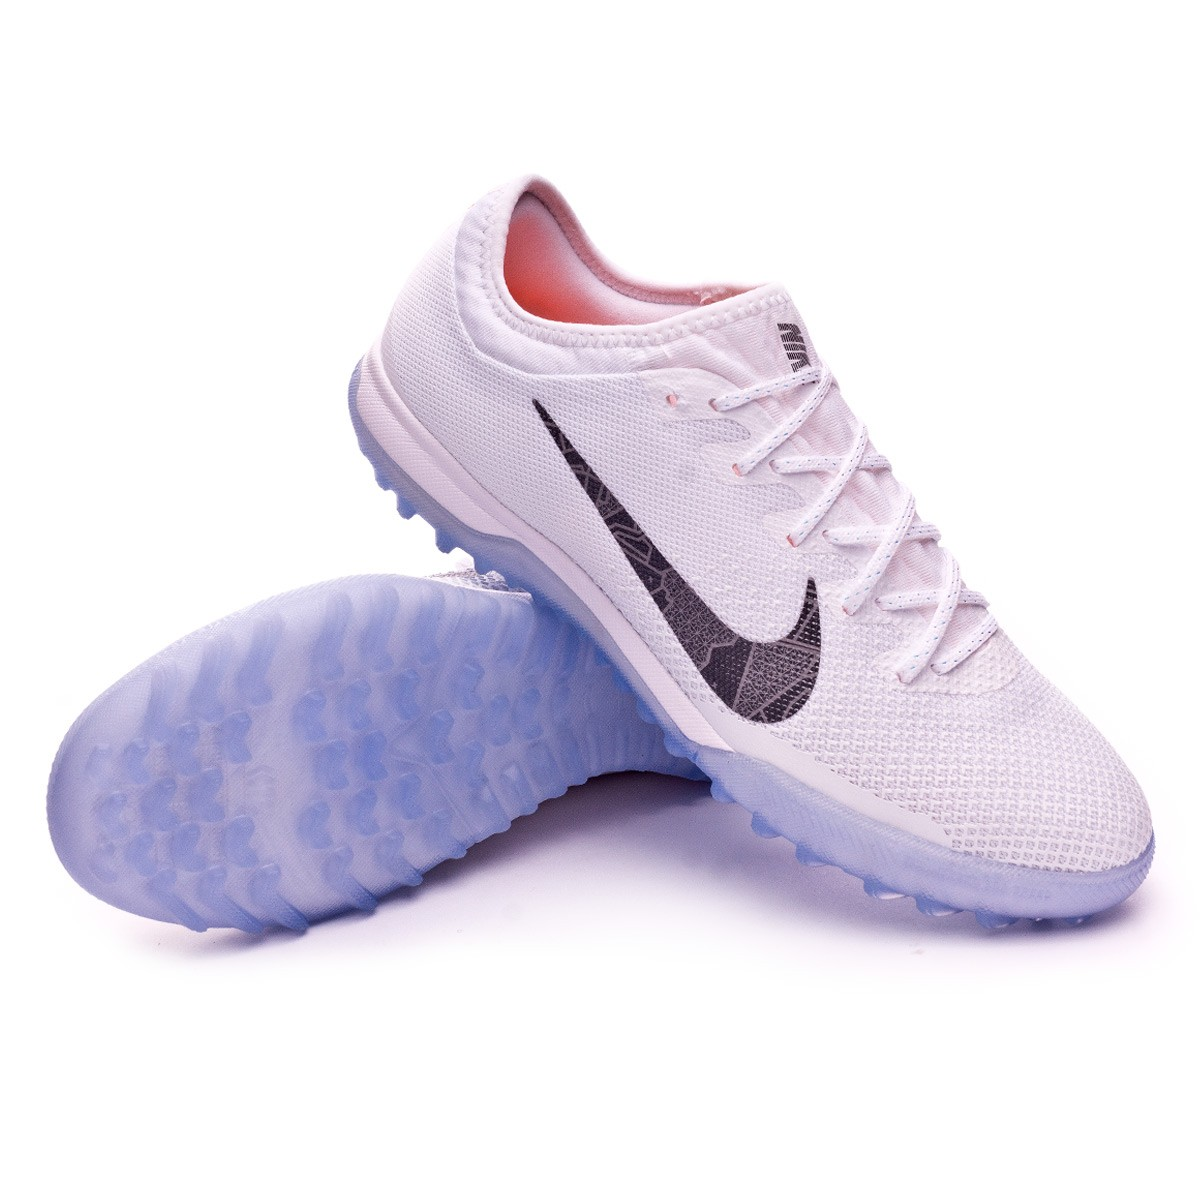 f97423c77e789 Football Boot Nike Mercurial VaporX XII Pro Turf White-Metallic cool ...